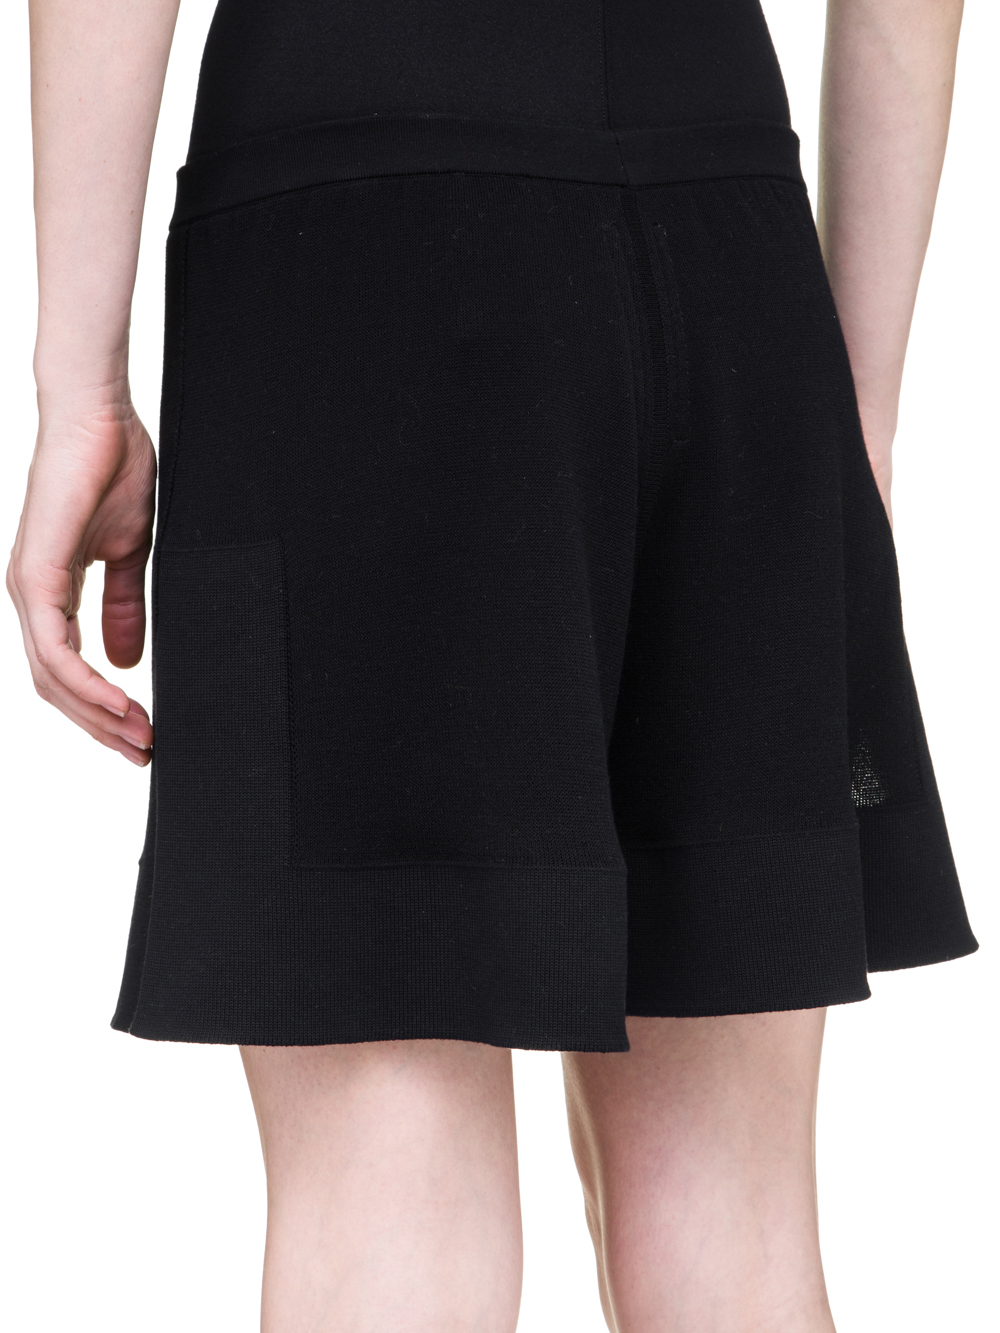 RICK OWENS OFF-THE-RUNWAY BOXERS IN BLACK SCULPTURAL KNIT